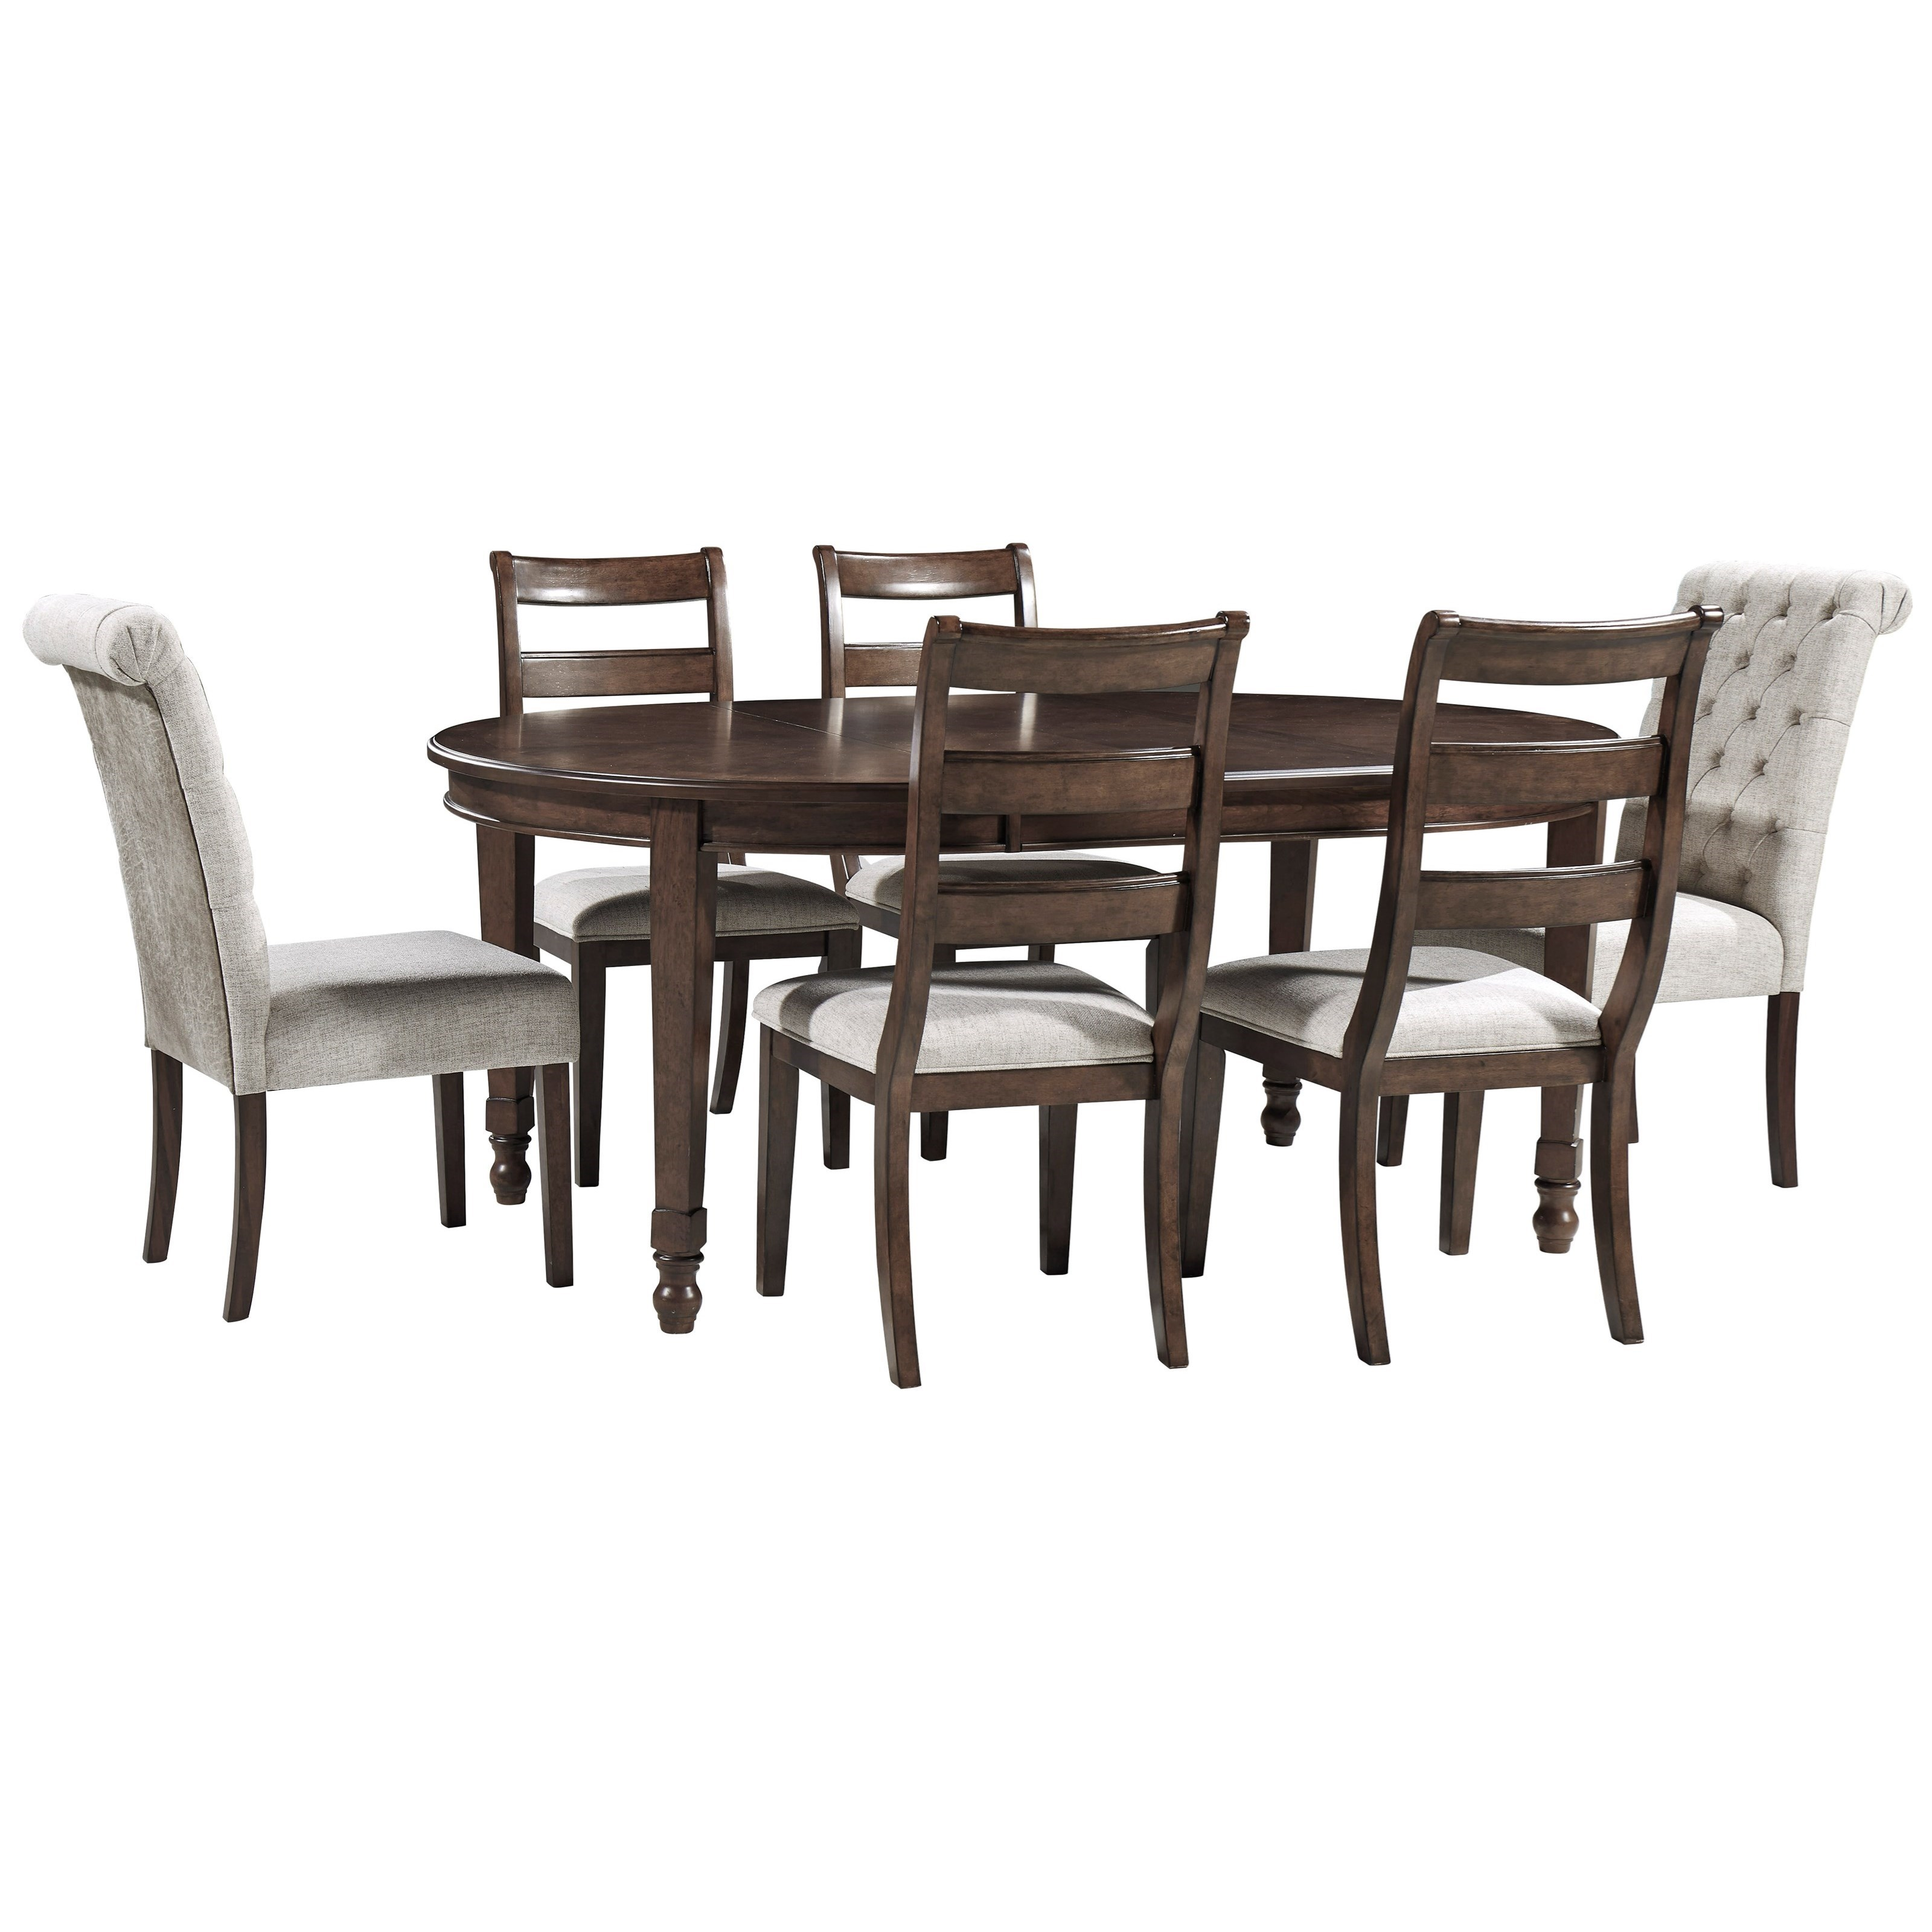 Adinton 7-Piece Table and Chair Set by Signature Design by Ashley at Catalog Outlet